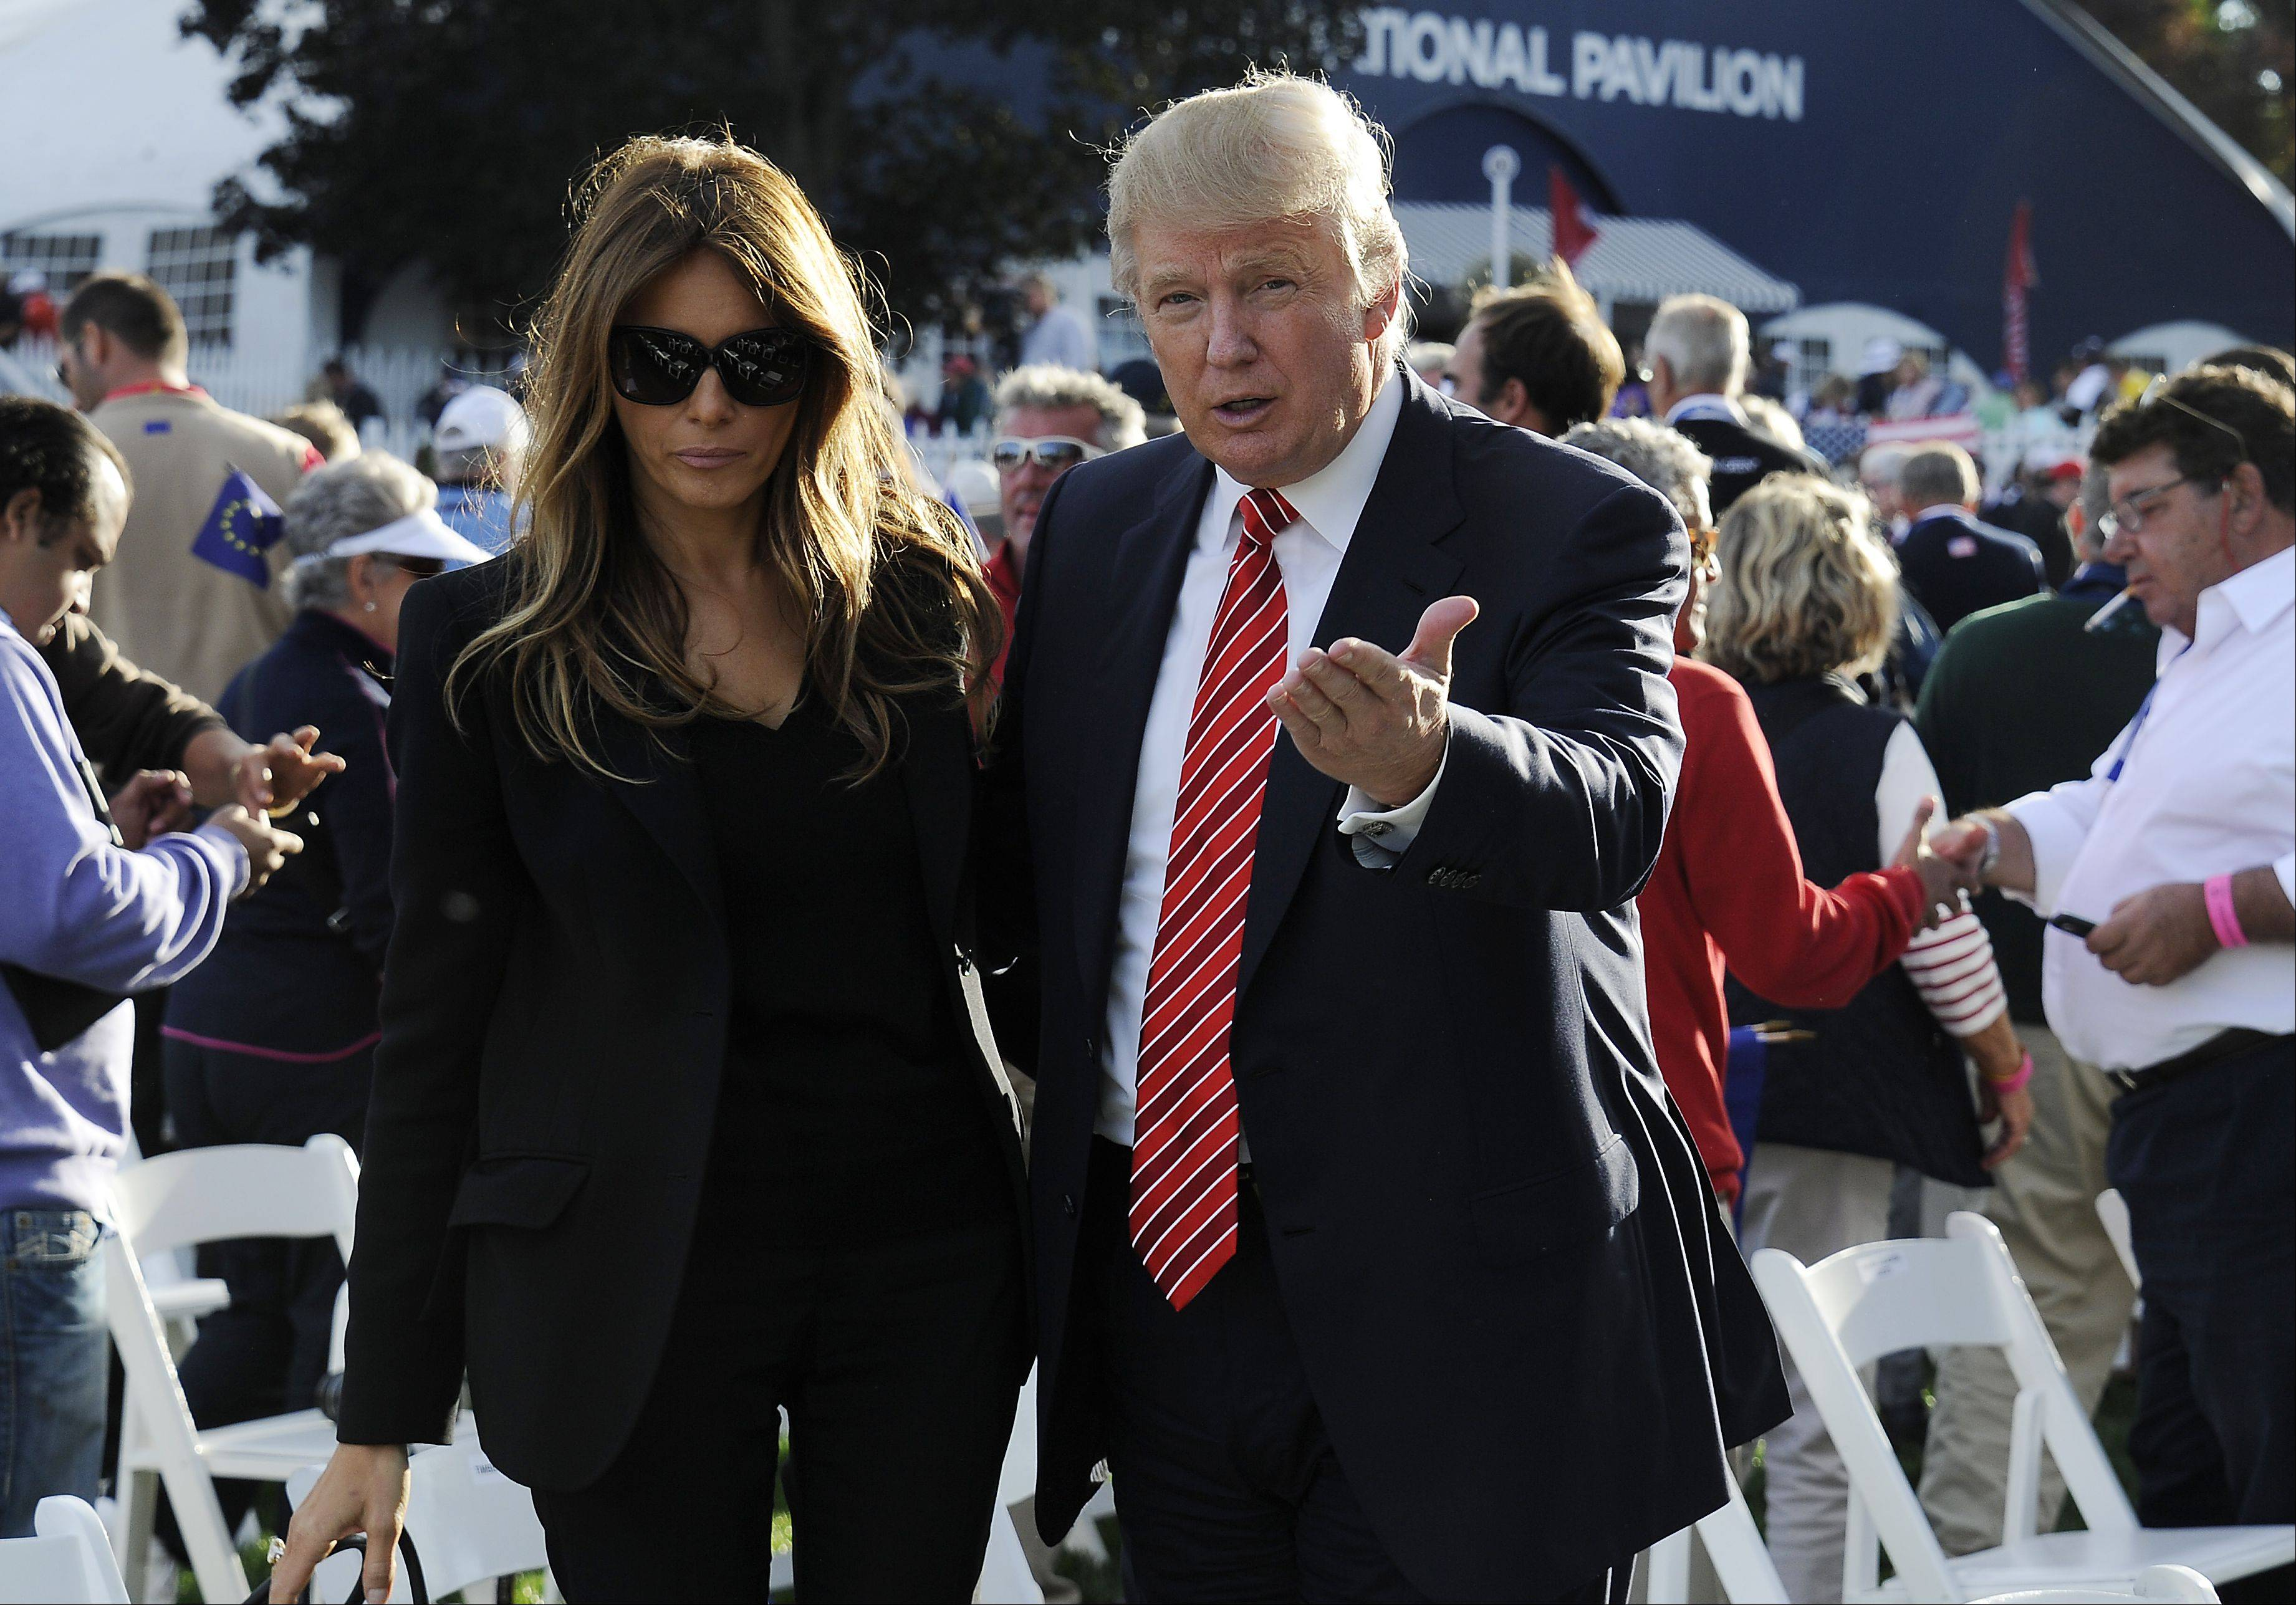 Donald Trump and wife, Melania, were there for the opening ceremonies of the Ryder Cup in Medinah on Thursday.